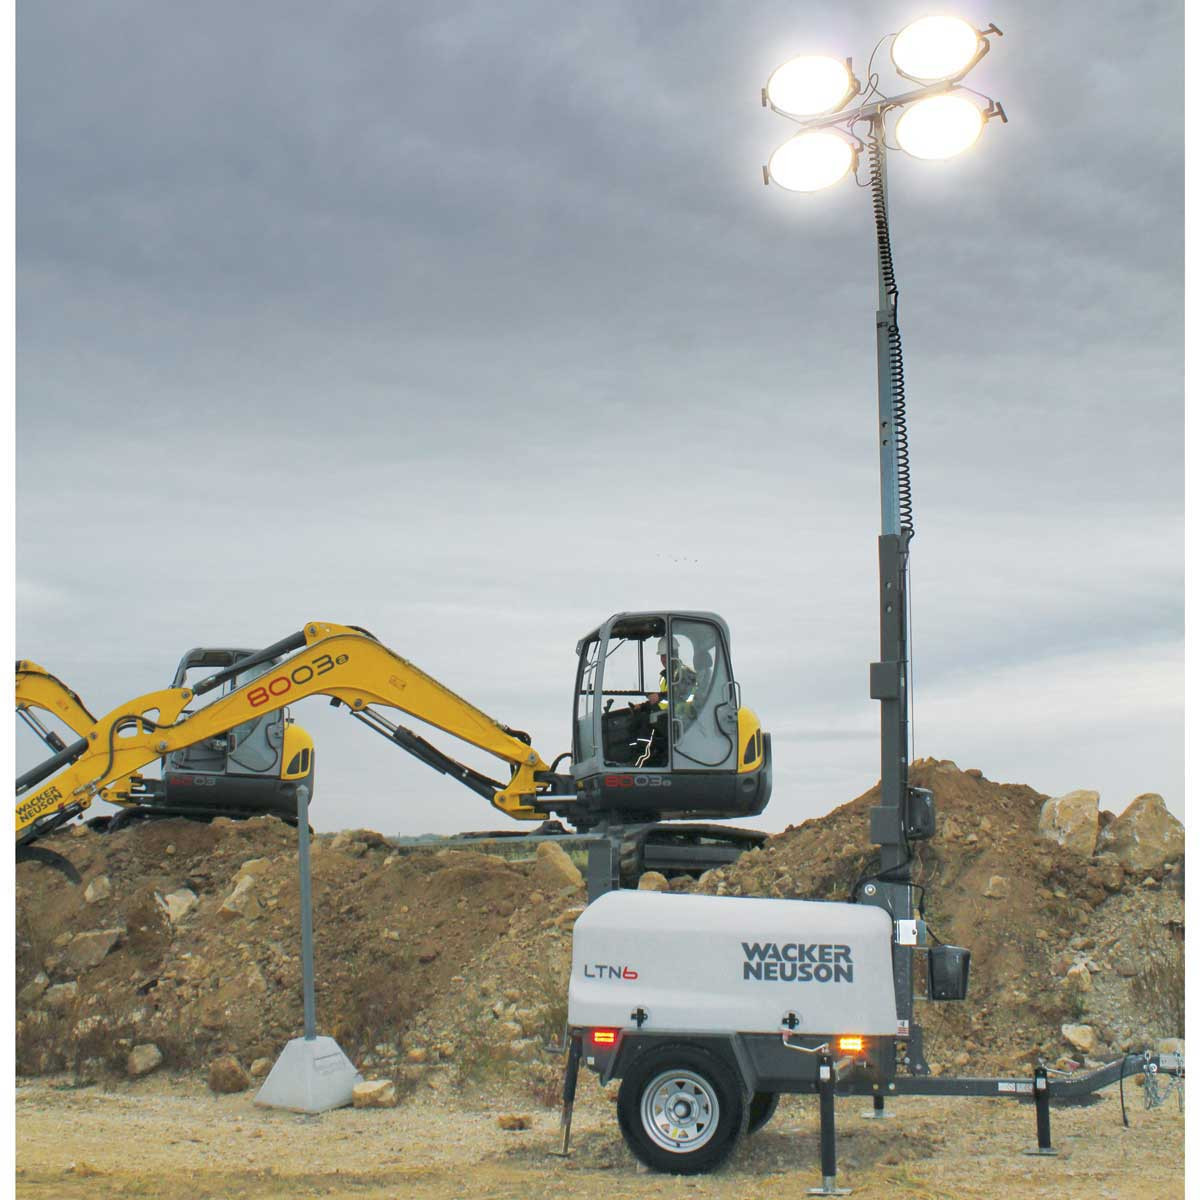 Wacker Neuson jobsite light tower